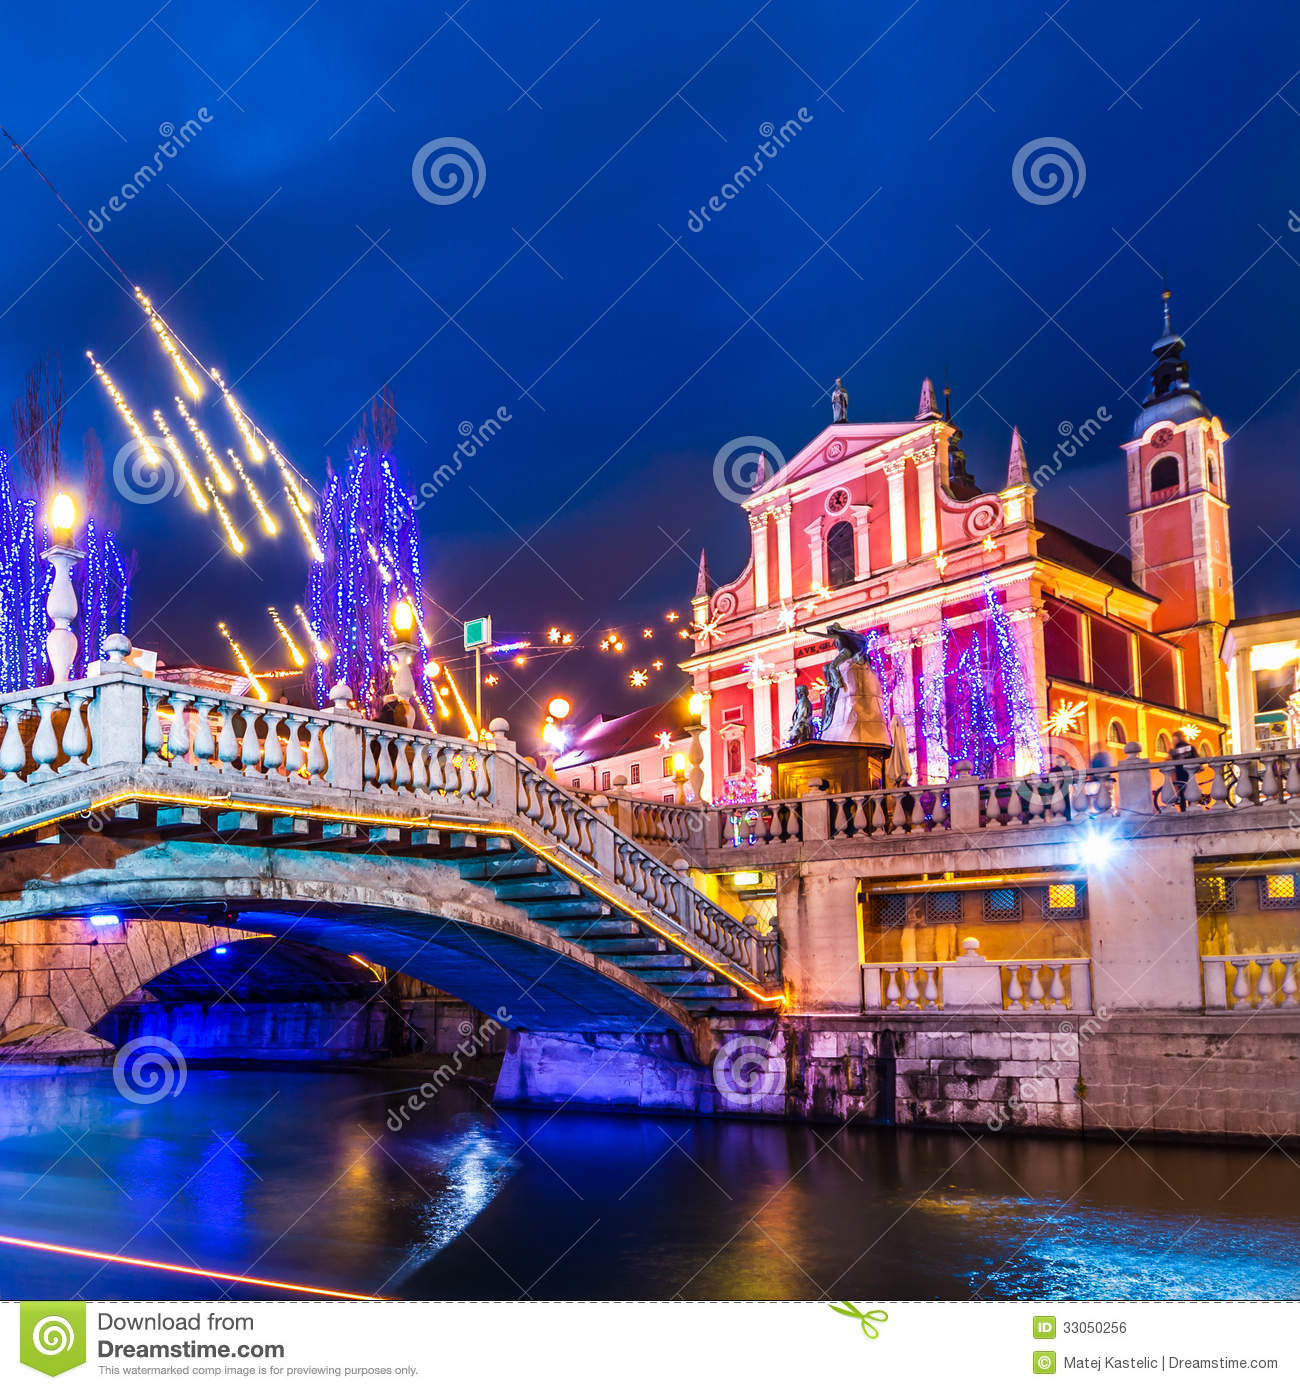 ... city center decorated for Christmas time. River Ljubljanica, Triple